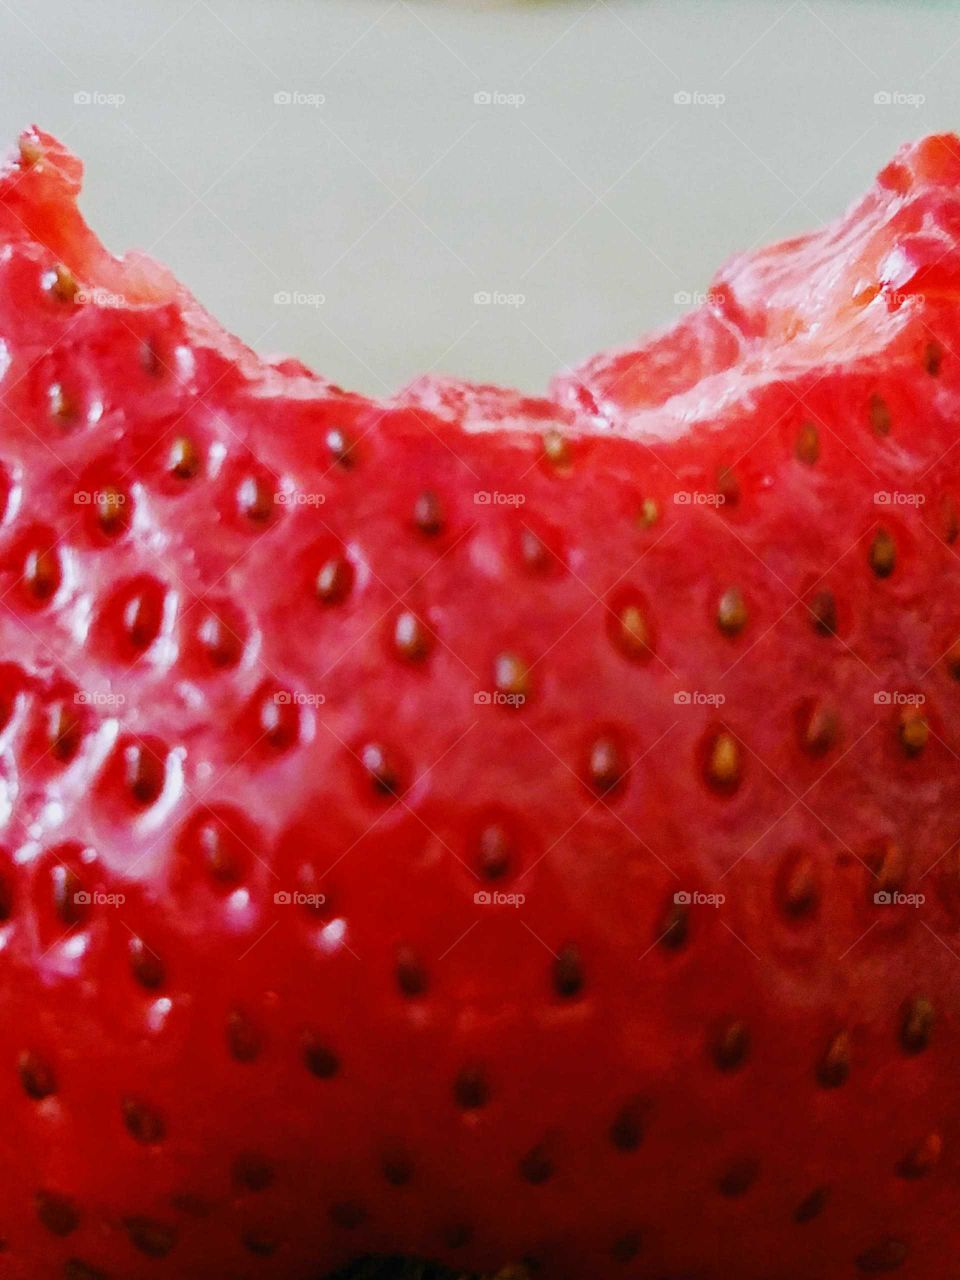 Strawberry Close-up